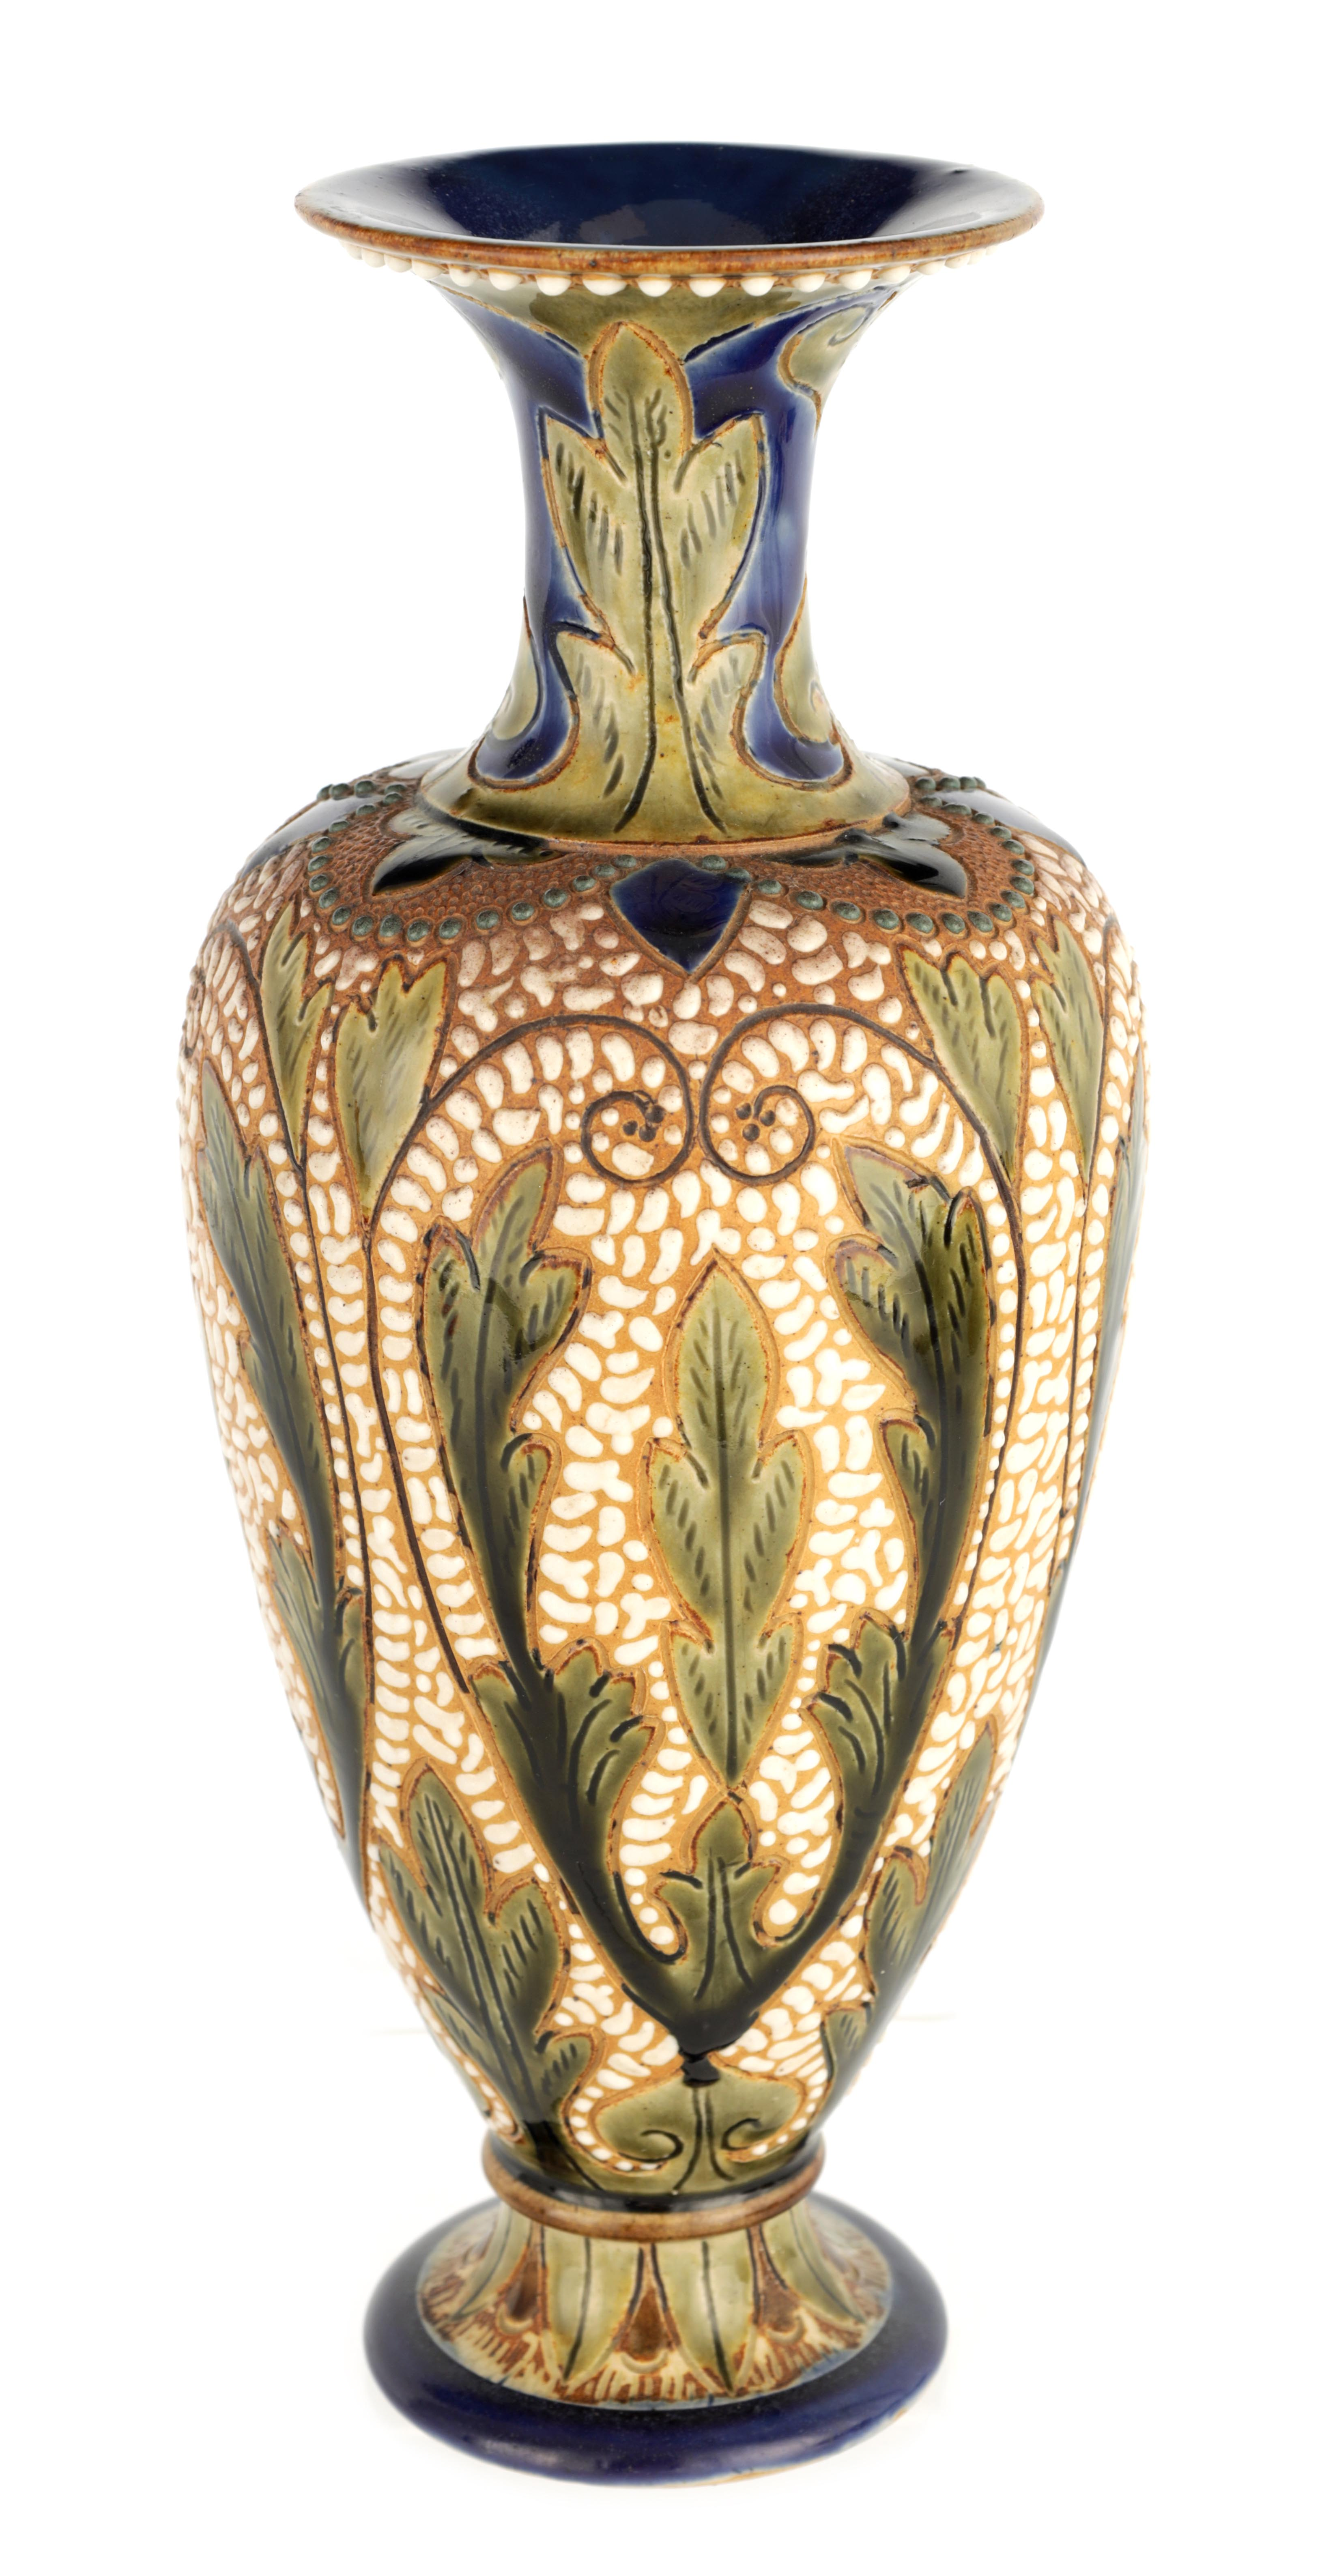 AN UNUSUAL LATE 19TH CENTURY FULHAM POTTERY STONEWARE FOOTED OVOID VASE WITH FLARED RIM decorated